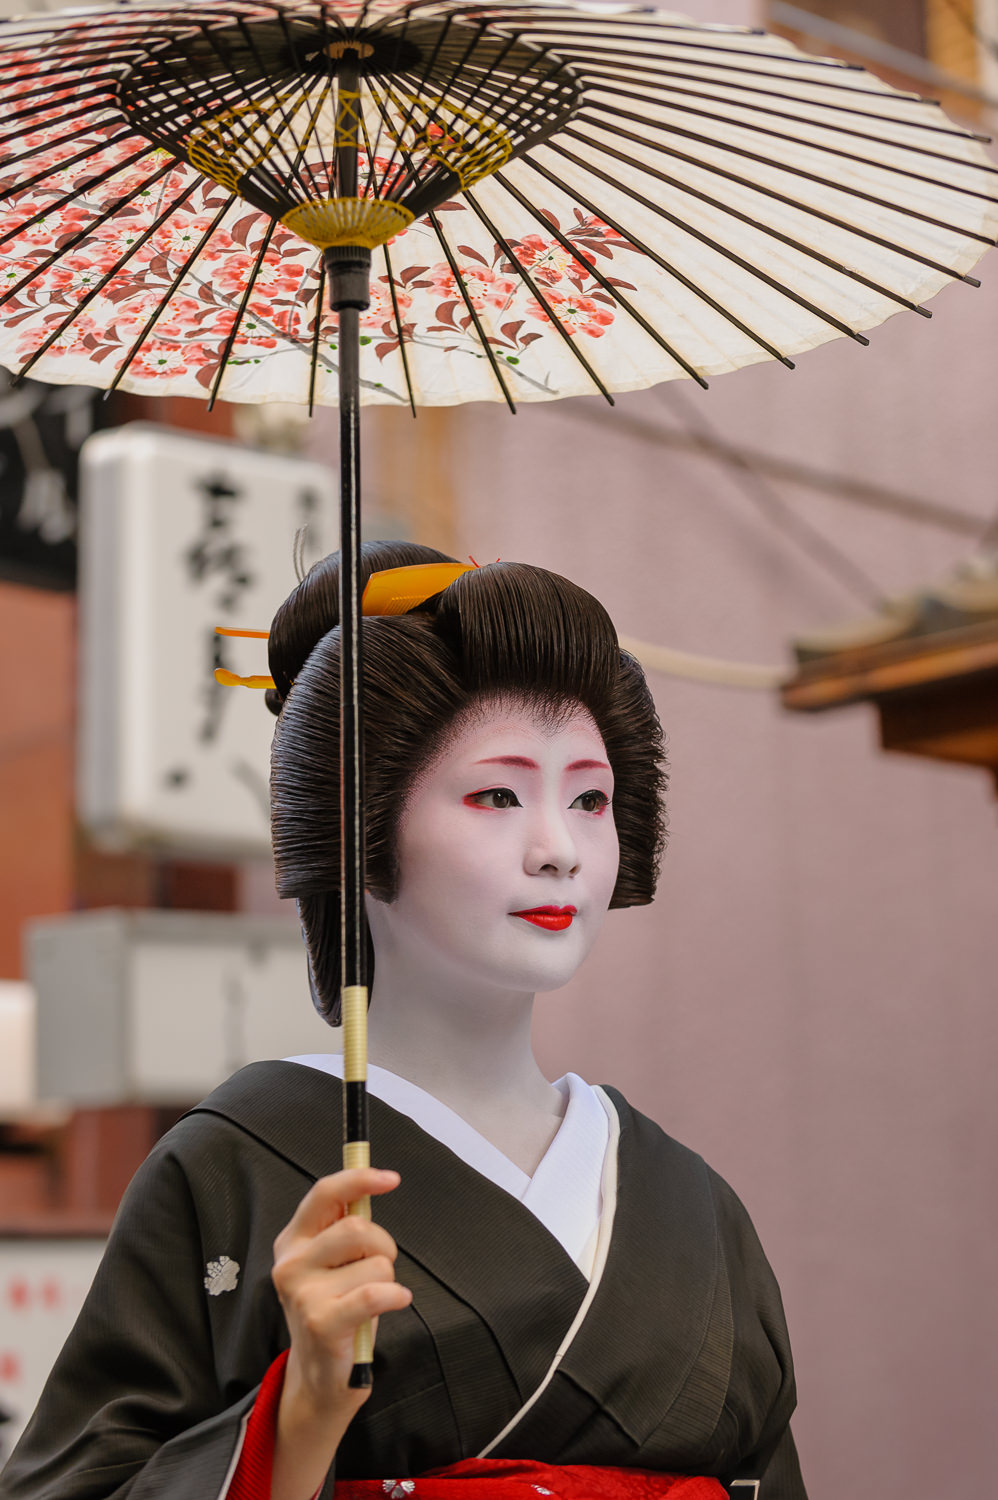 The geisha Mameharu of Gion Kobu with a sun parasol during Hassaku, an event held every August 1 in Kyoto